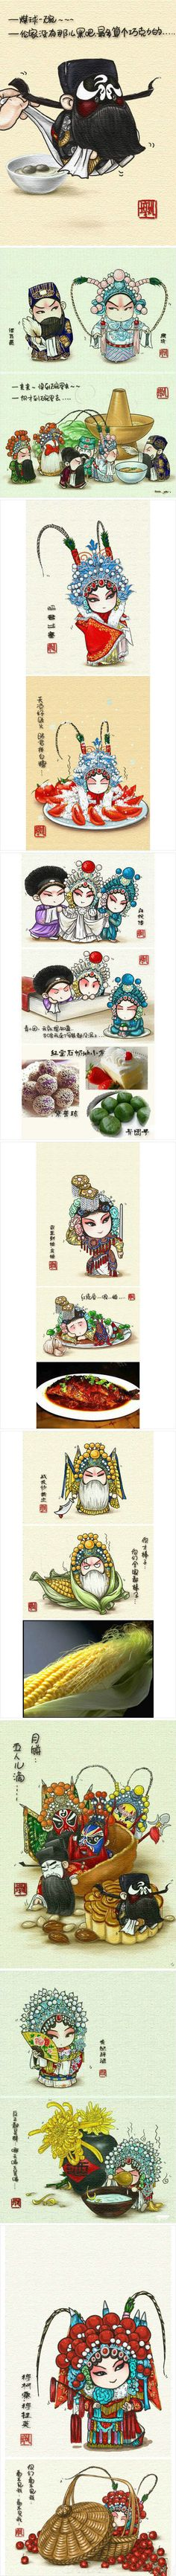 Food decorated with Beijing Opera! So cute!